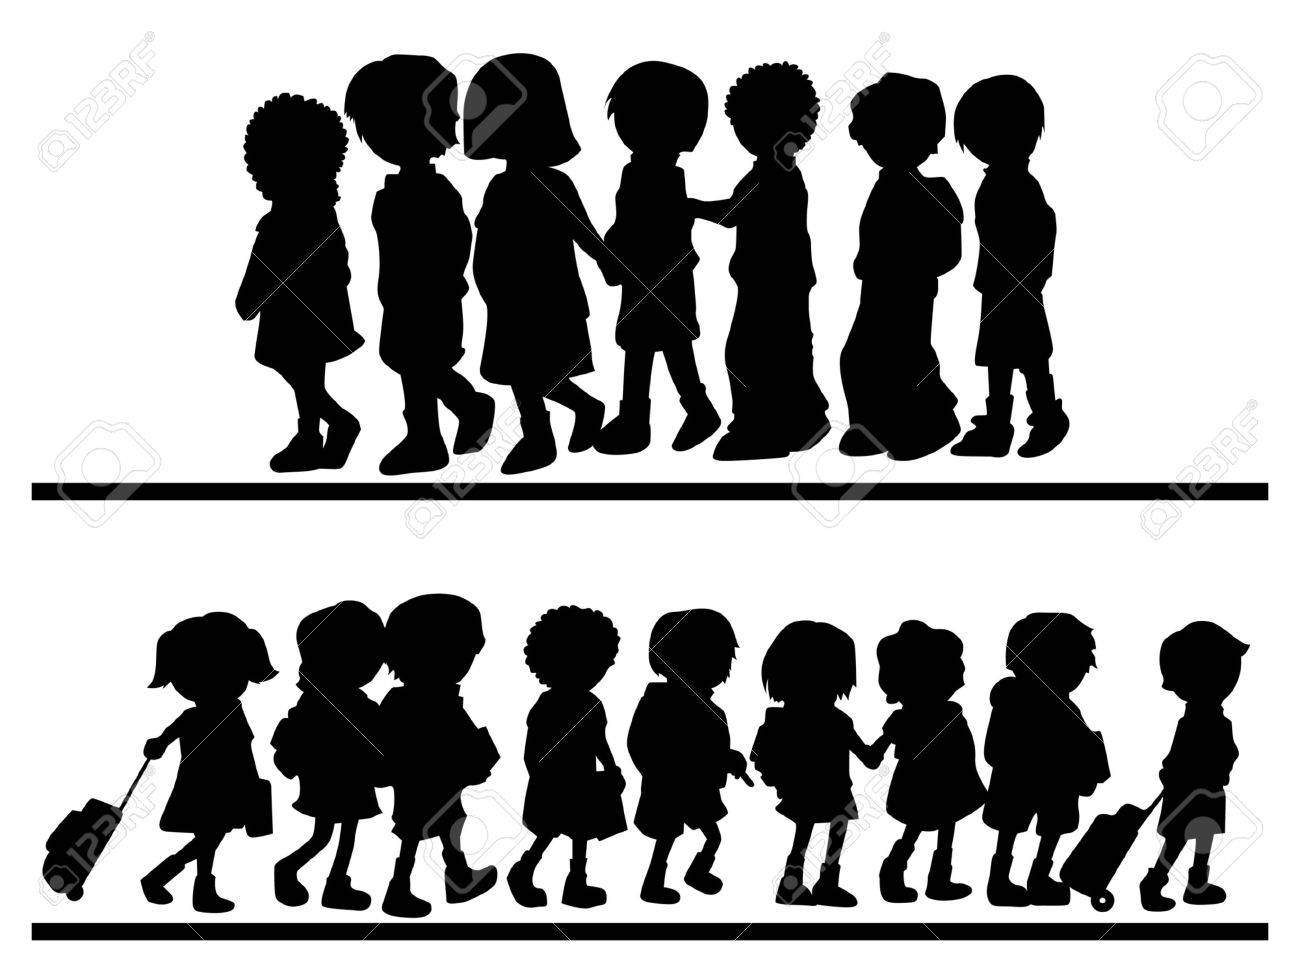 Silhouettes of Children Walking Stock Vector - 1975645